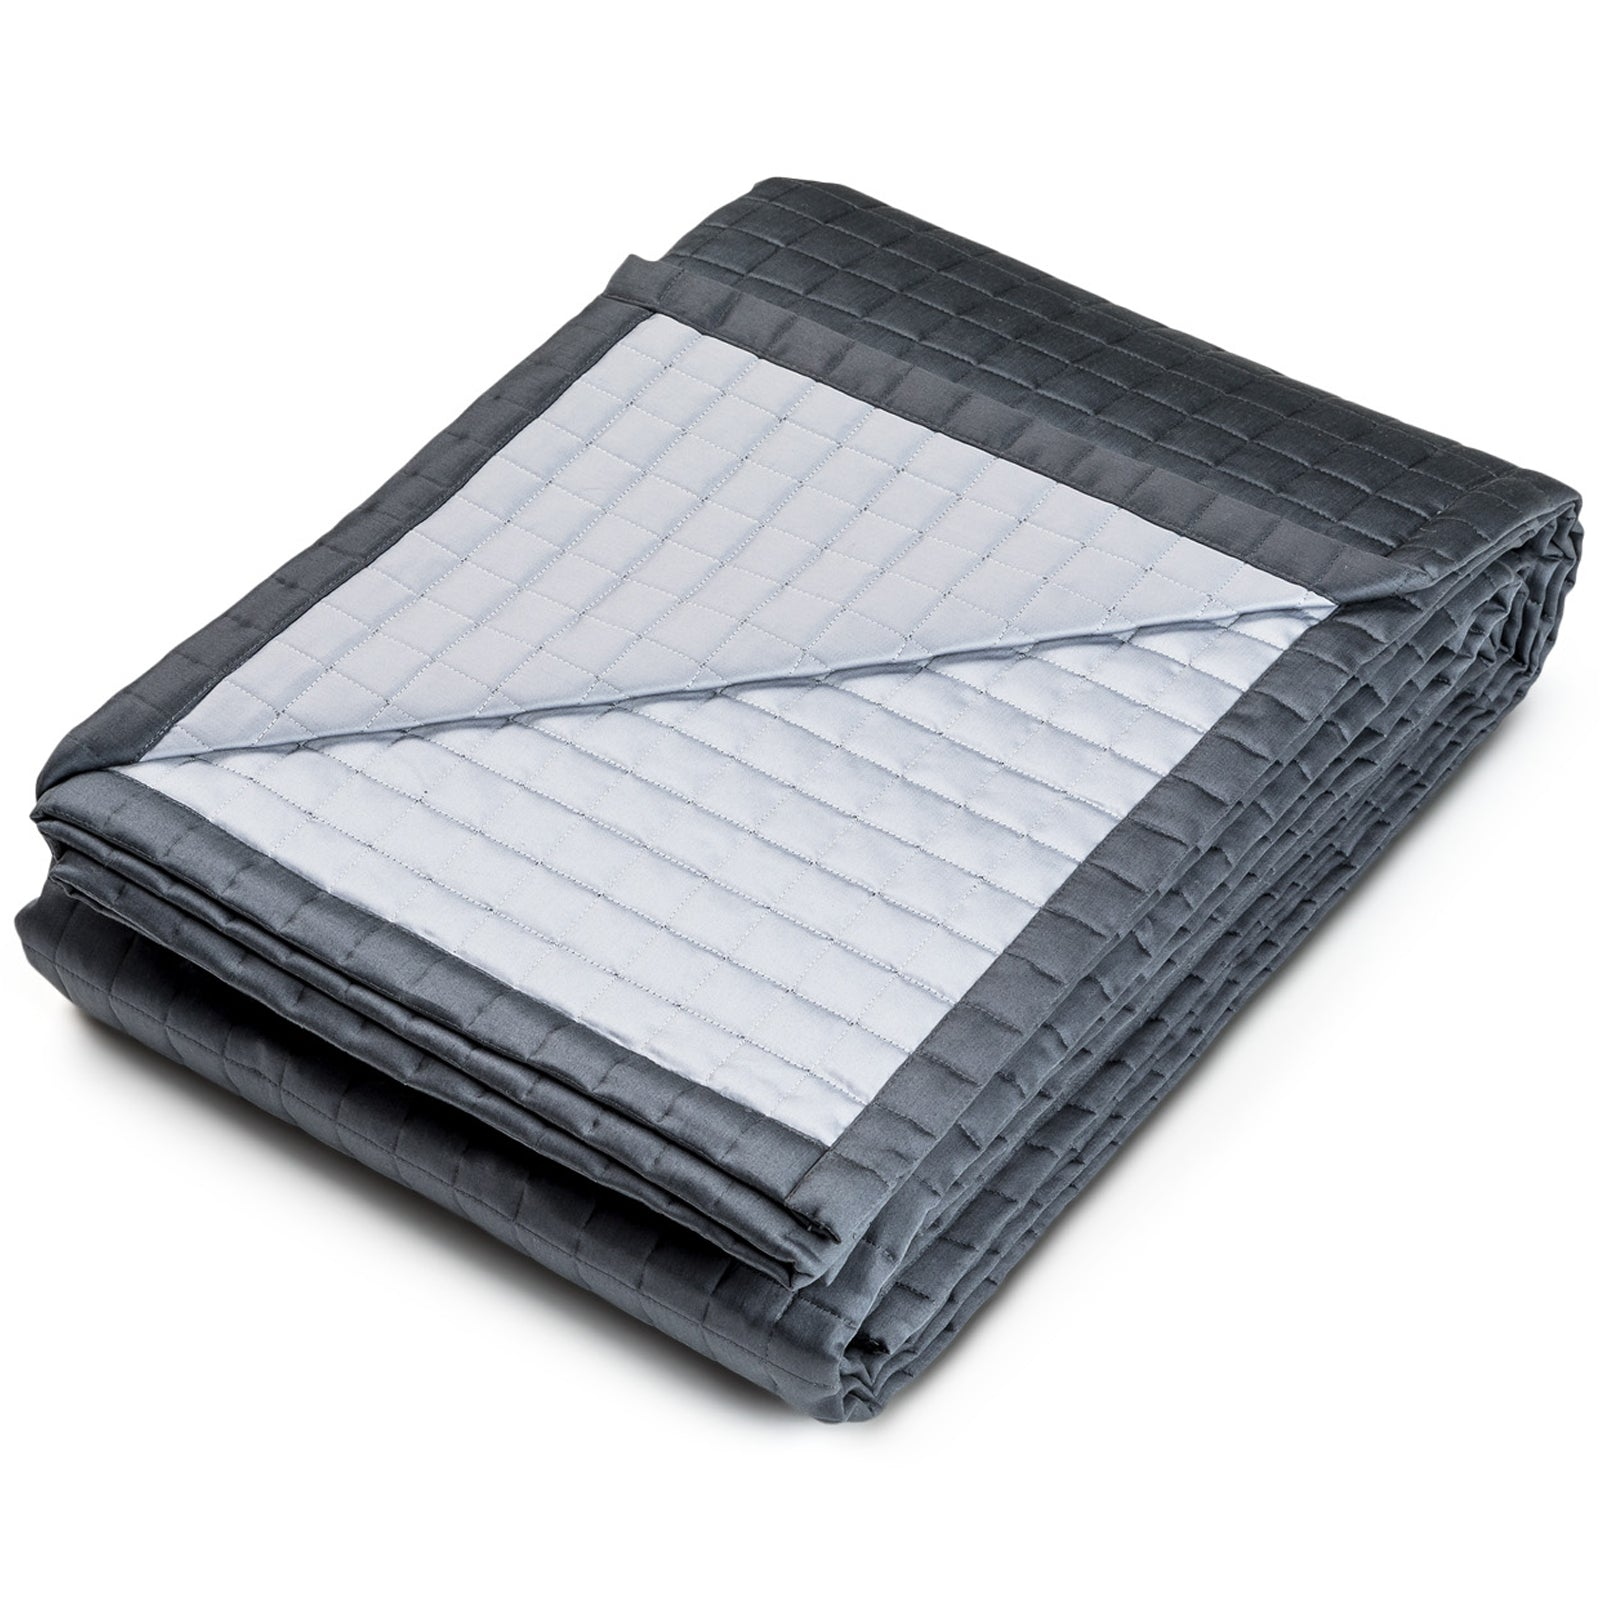 Hunter Quilted Bedspread Midnight by LuxDeco.com